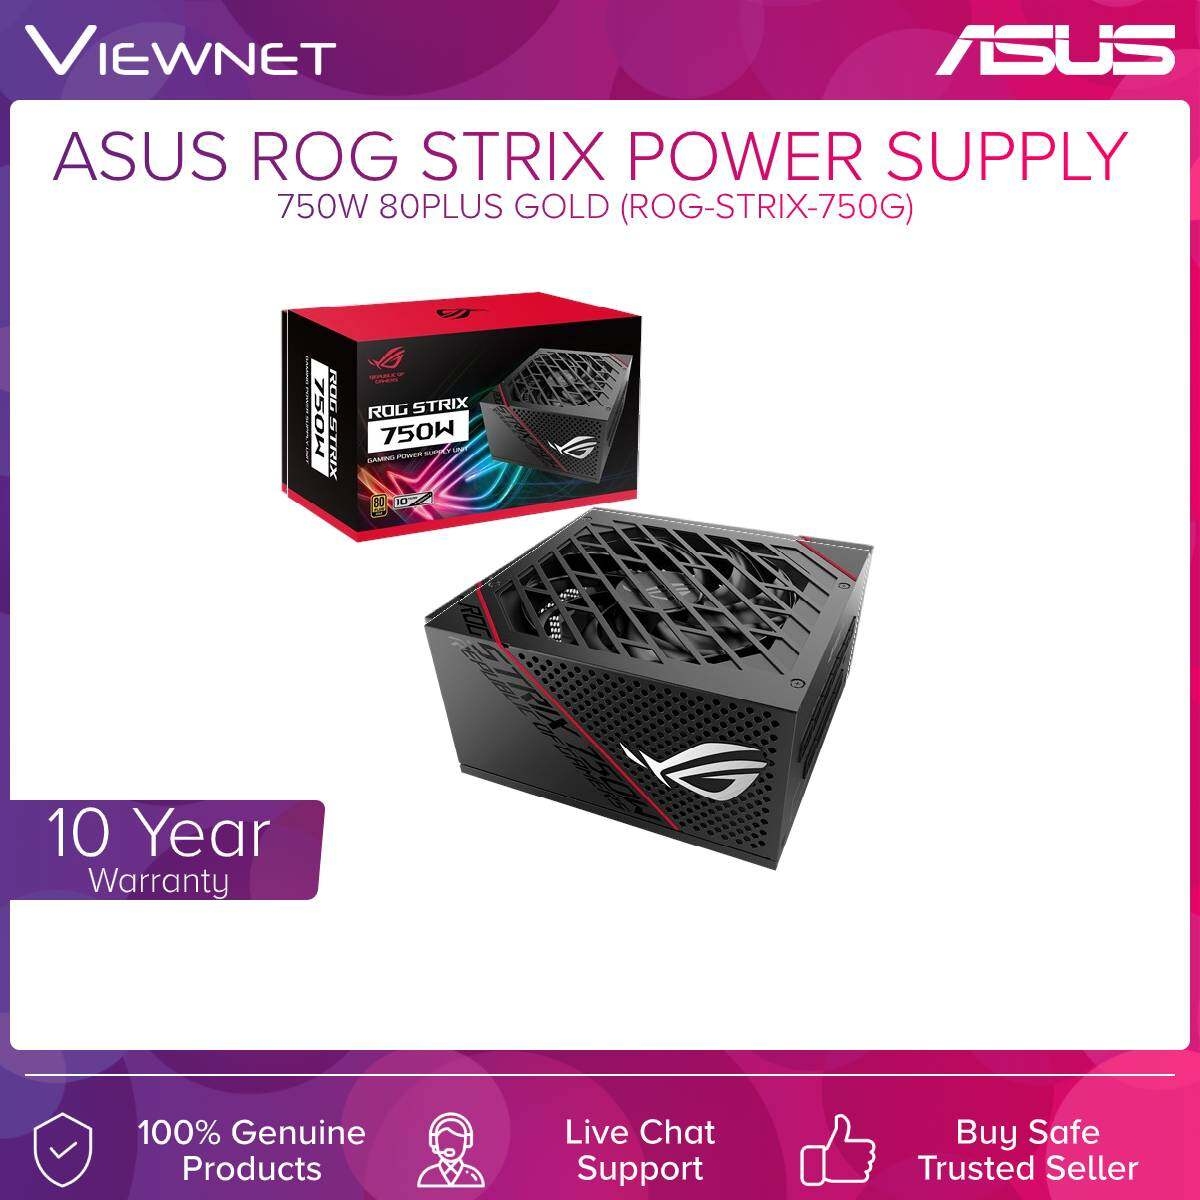 Asus Rog Strix (ROG-STRIX-750G) Power Supply 750W 80Plus Gold For Desktop , ROG Heatsinks , Frozen Silence